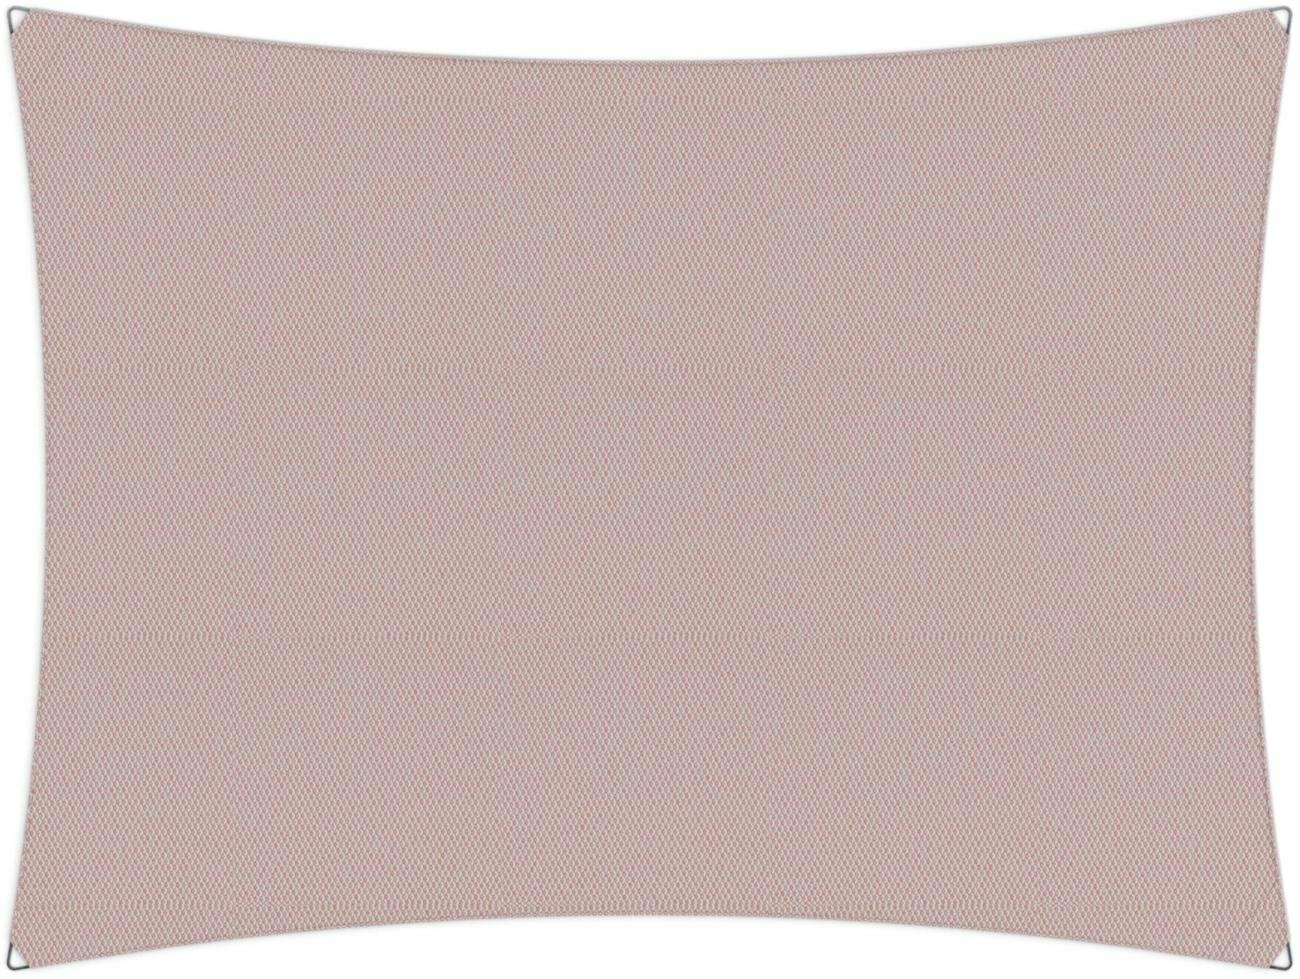 Ingenua shade sail Rectangle 5 x 3 m, for outdoor use. Colour of the fabric shade sail Blush.